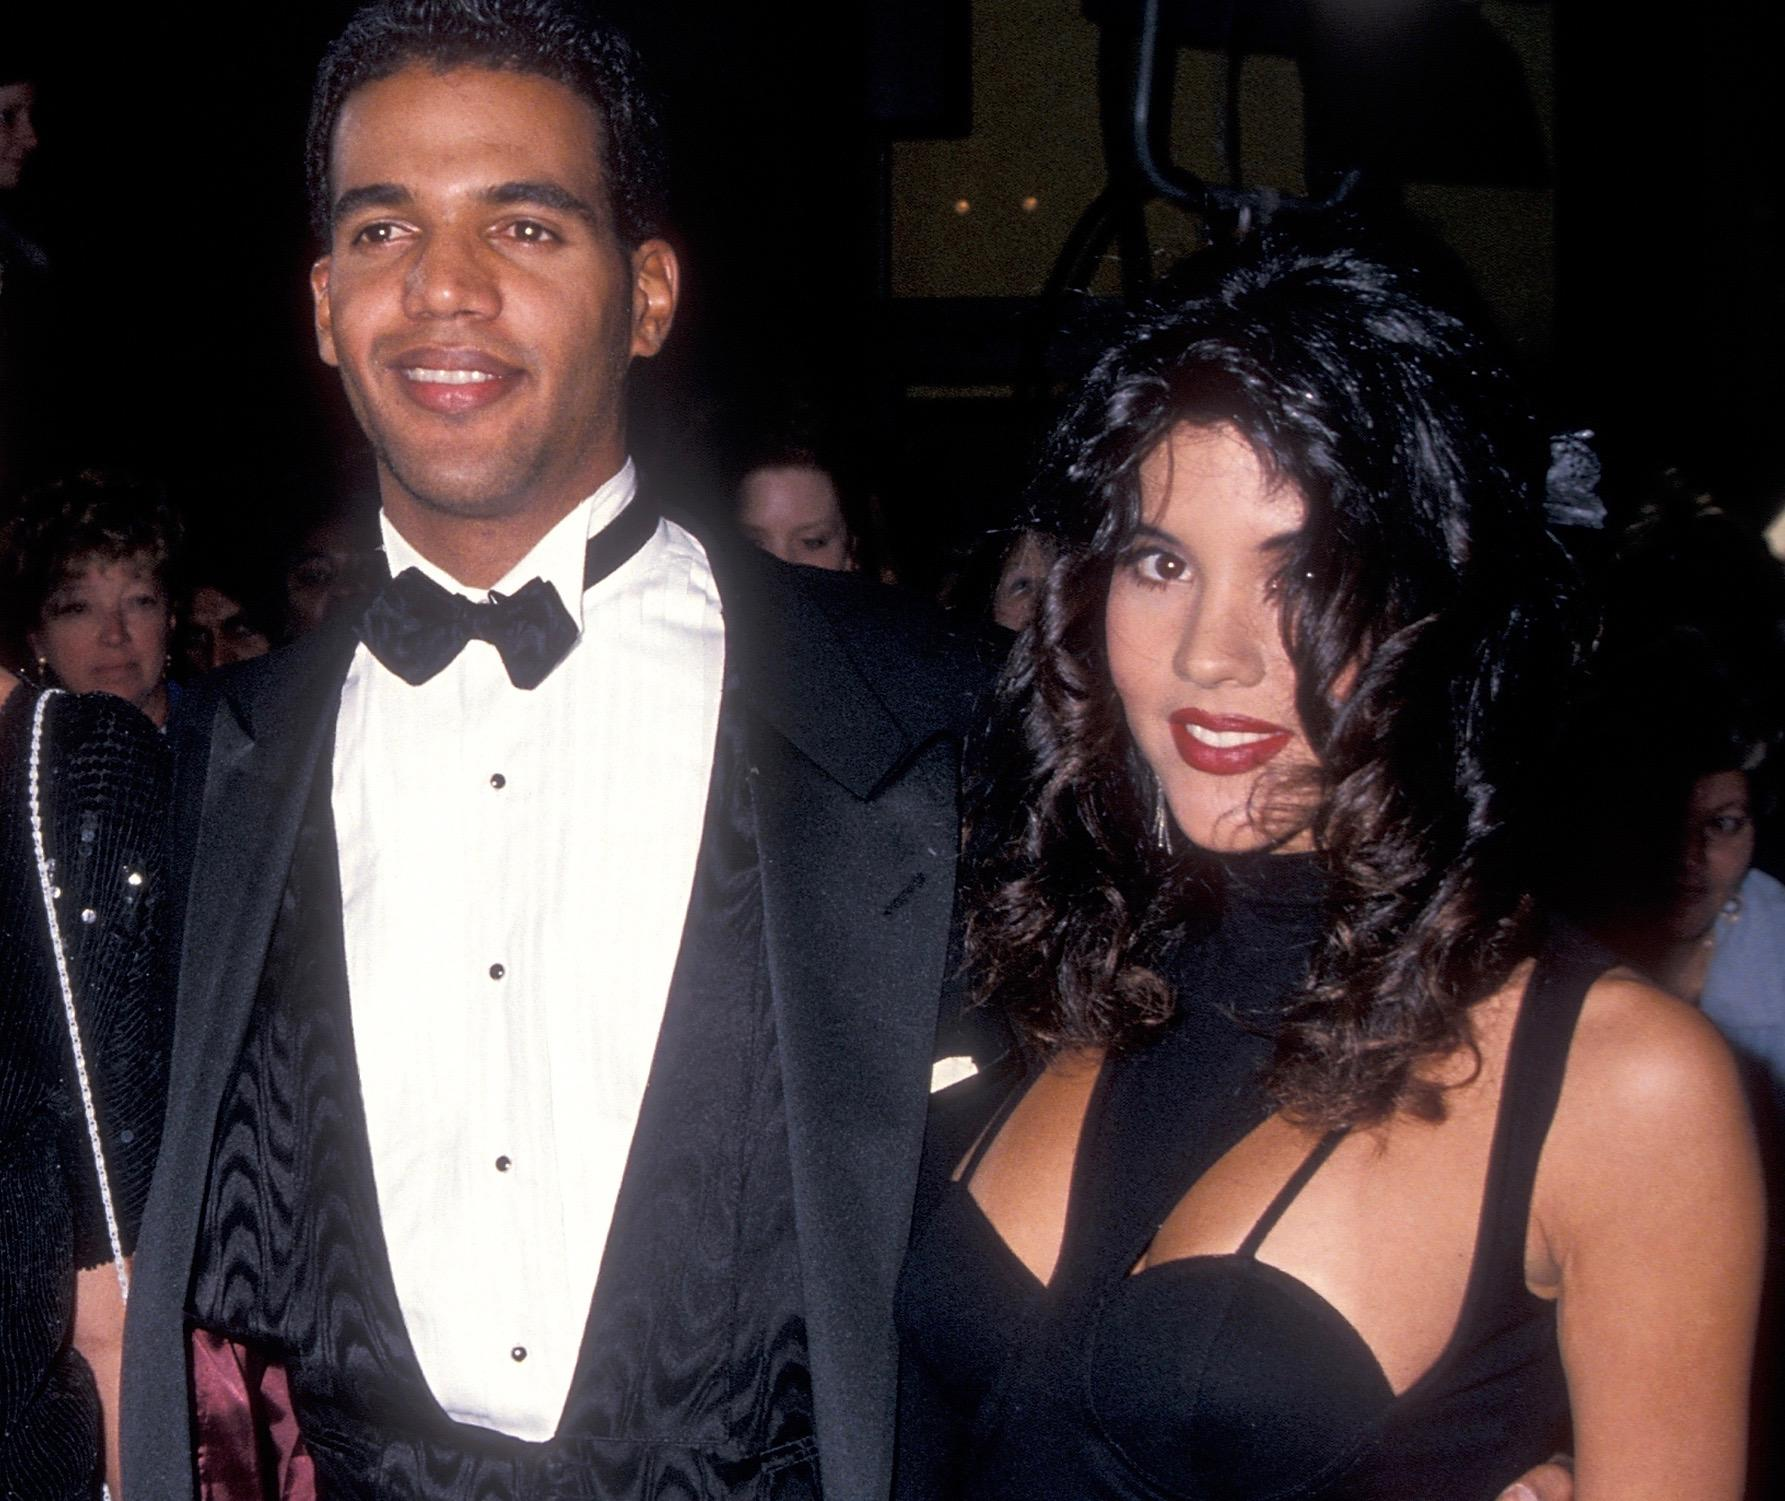 Kristoff St. John's ex claims she was hospitalized against her will after his death: 'I'm grieving, not crazy'